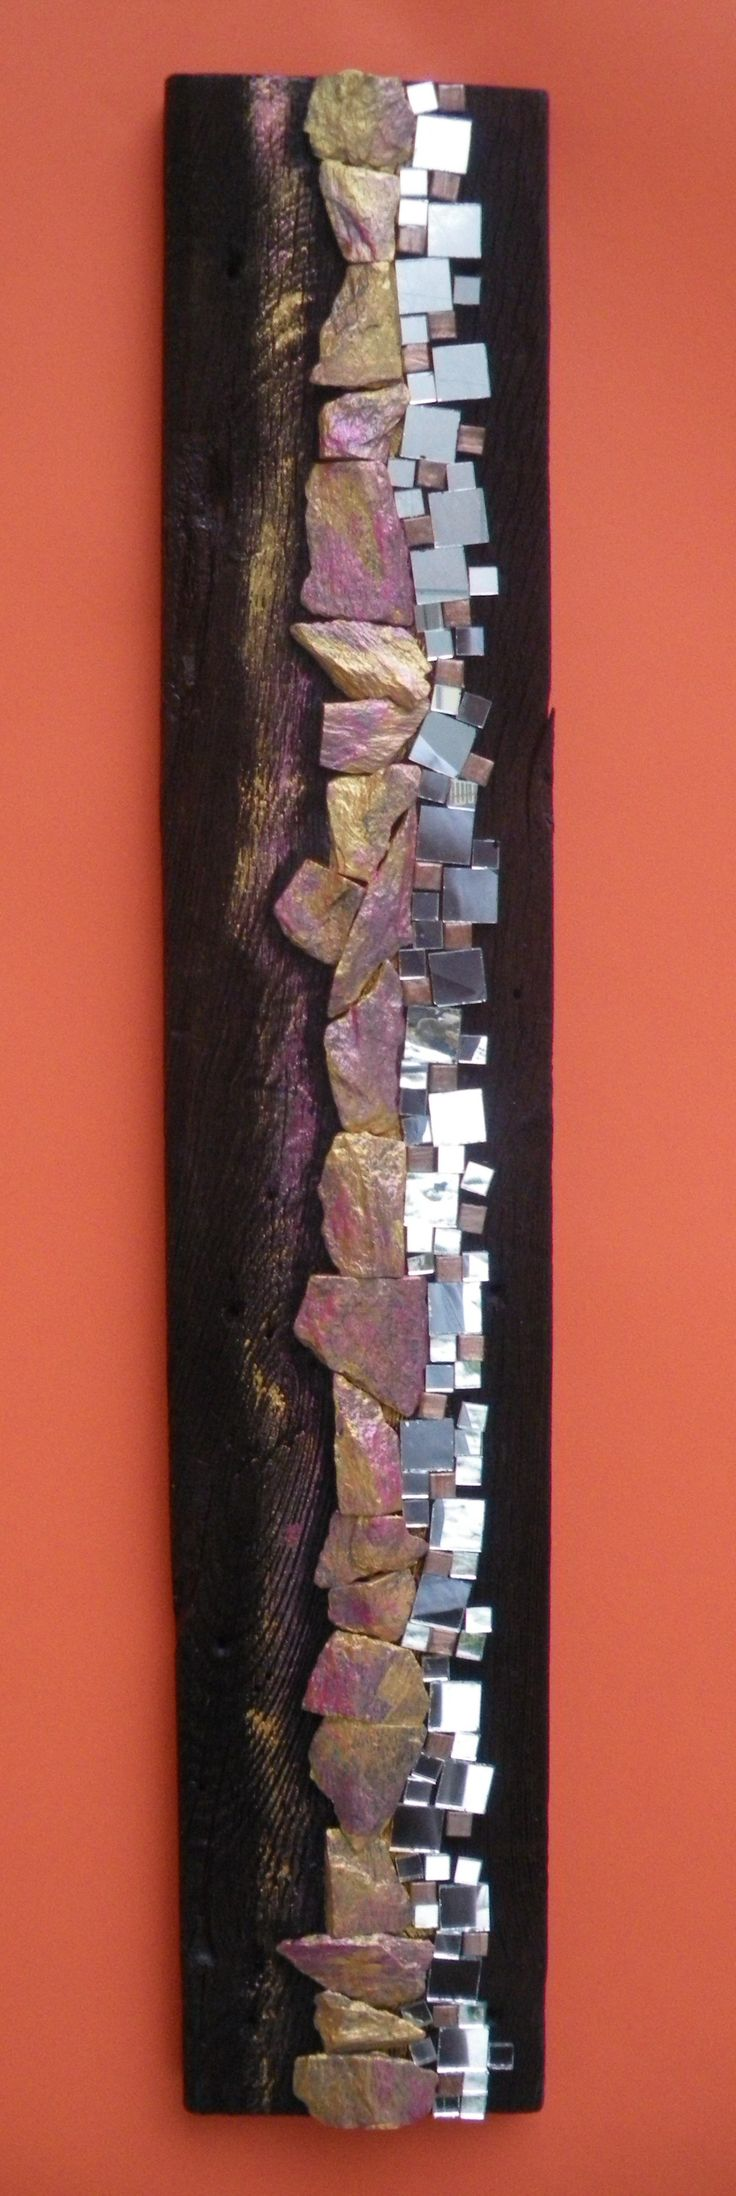 mosaic on wood. Abstract. Shimmers